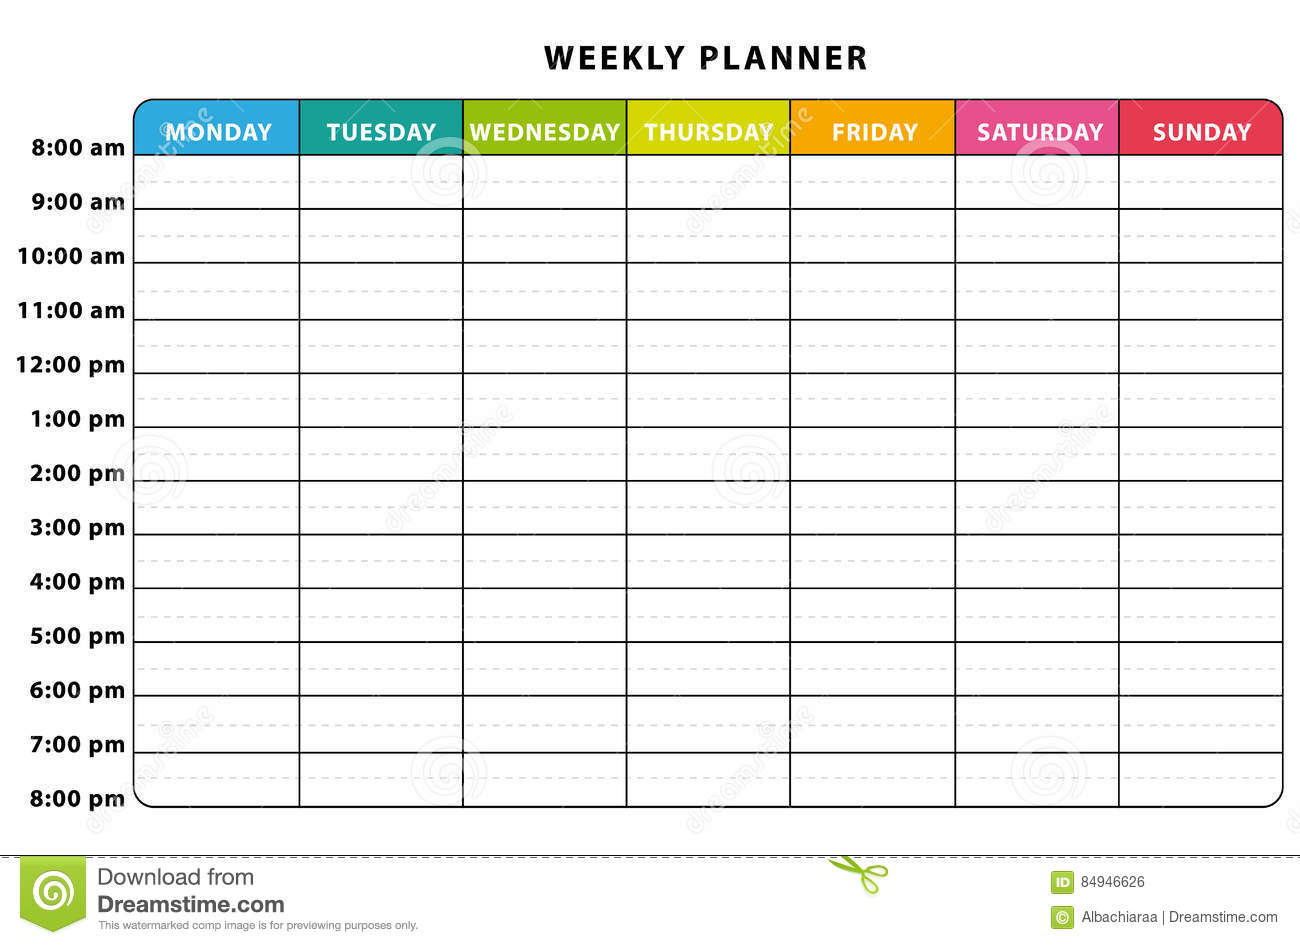 week planner by hour